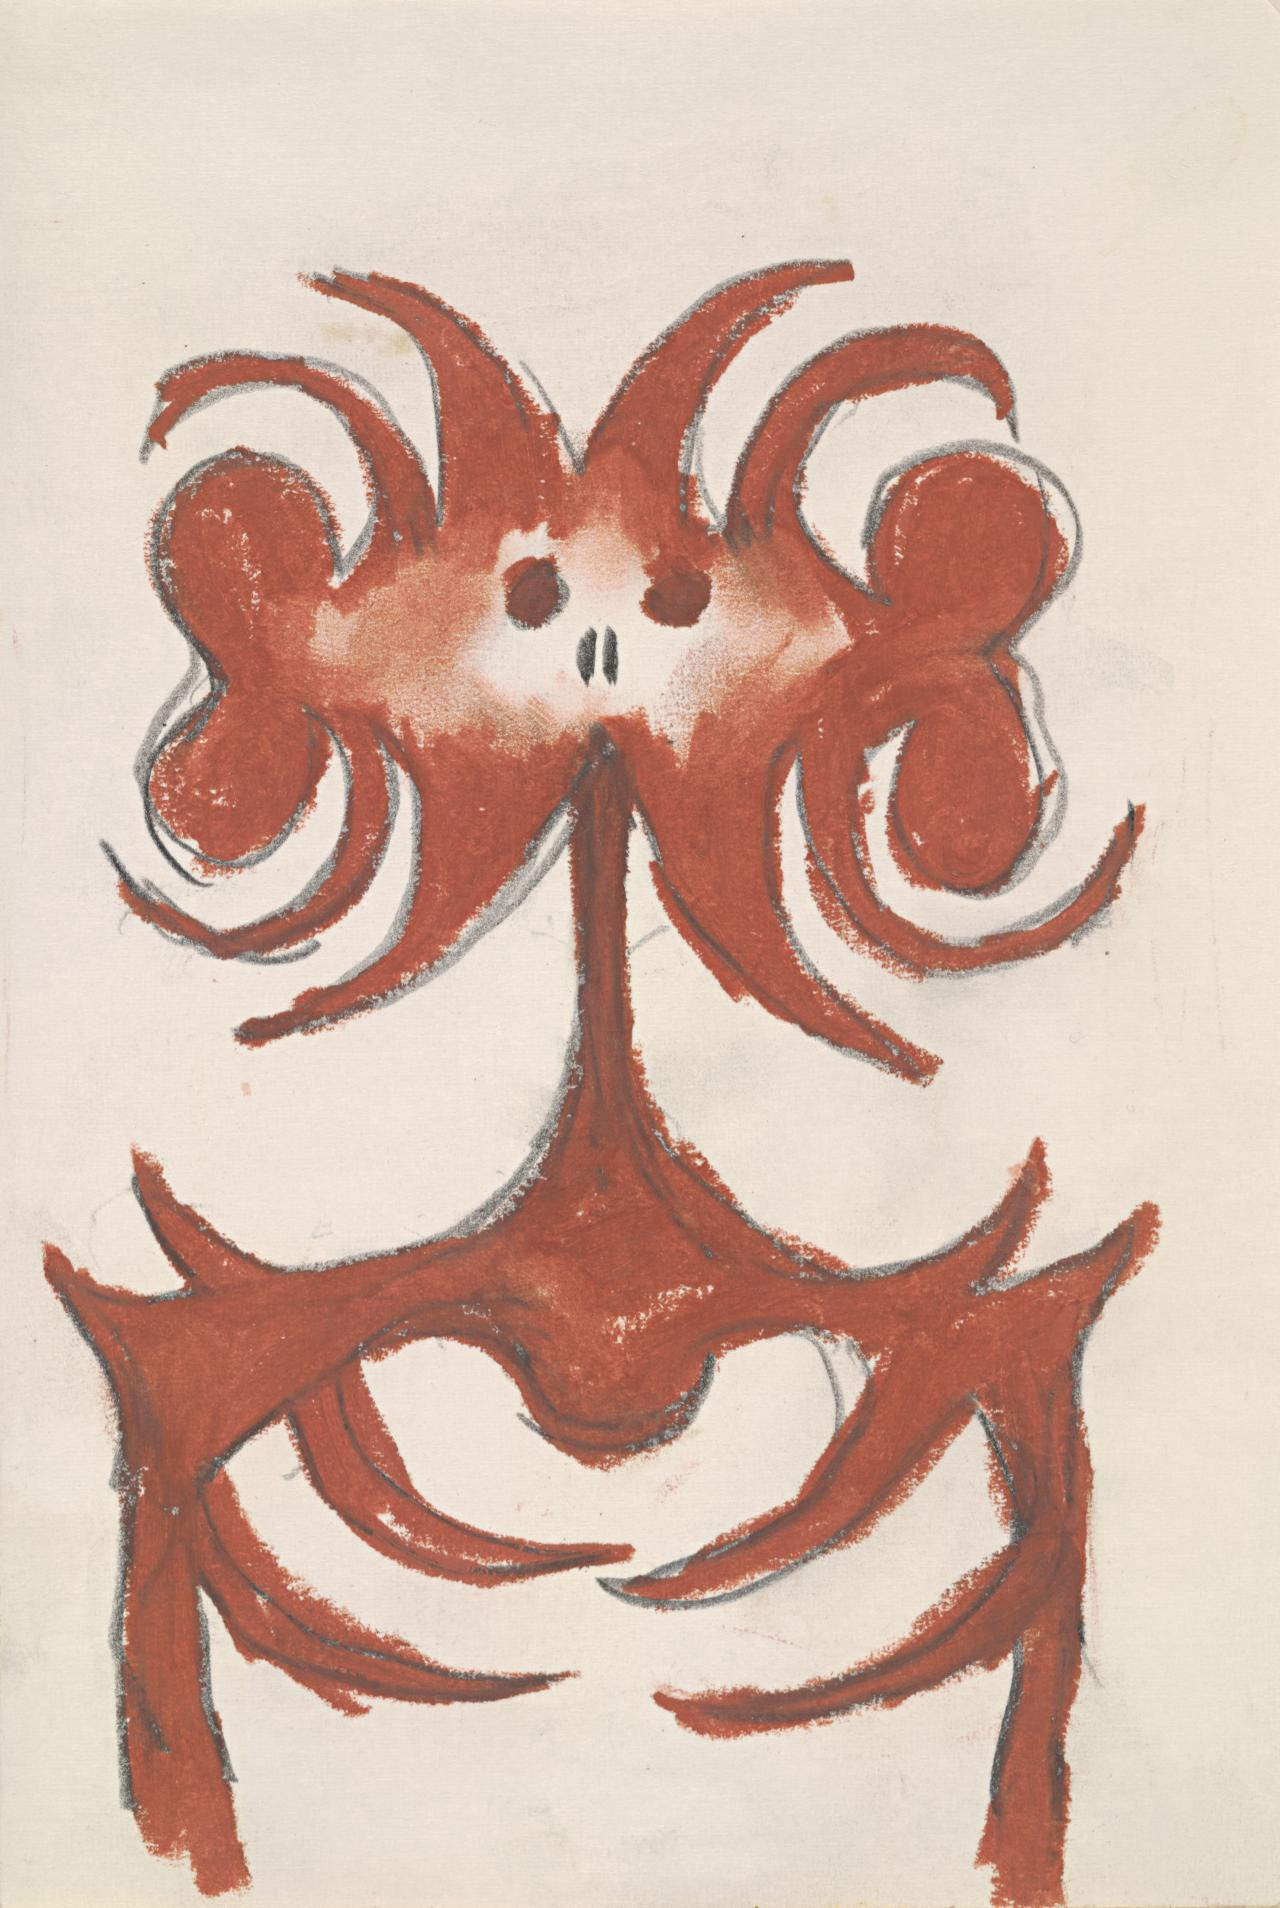 (Sepik Victoriana - Sketch from Sepik River Shield)